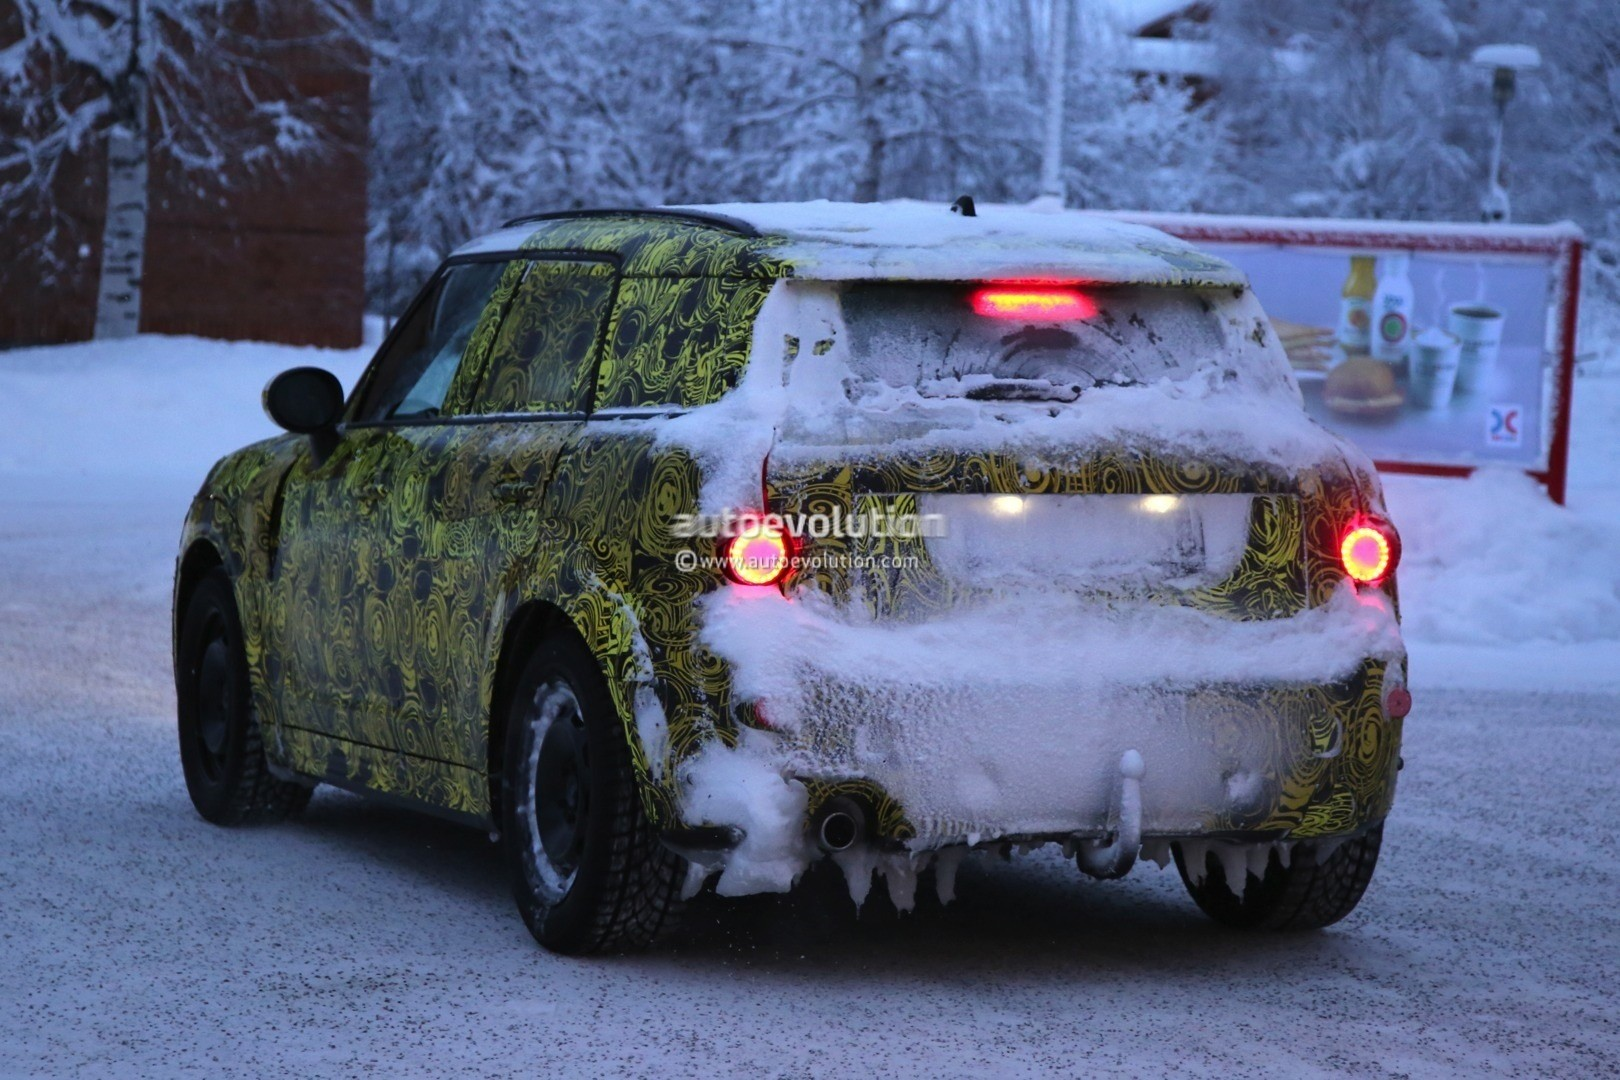 2017 MINI Countryman Prototype Spied Playing in the Snow